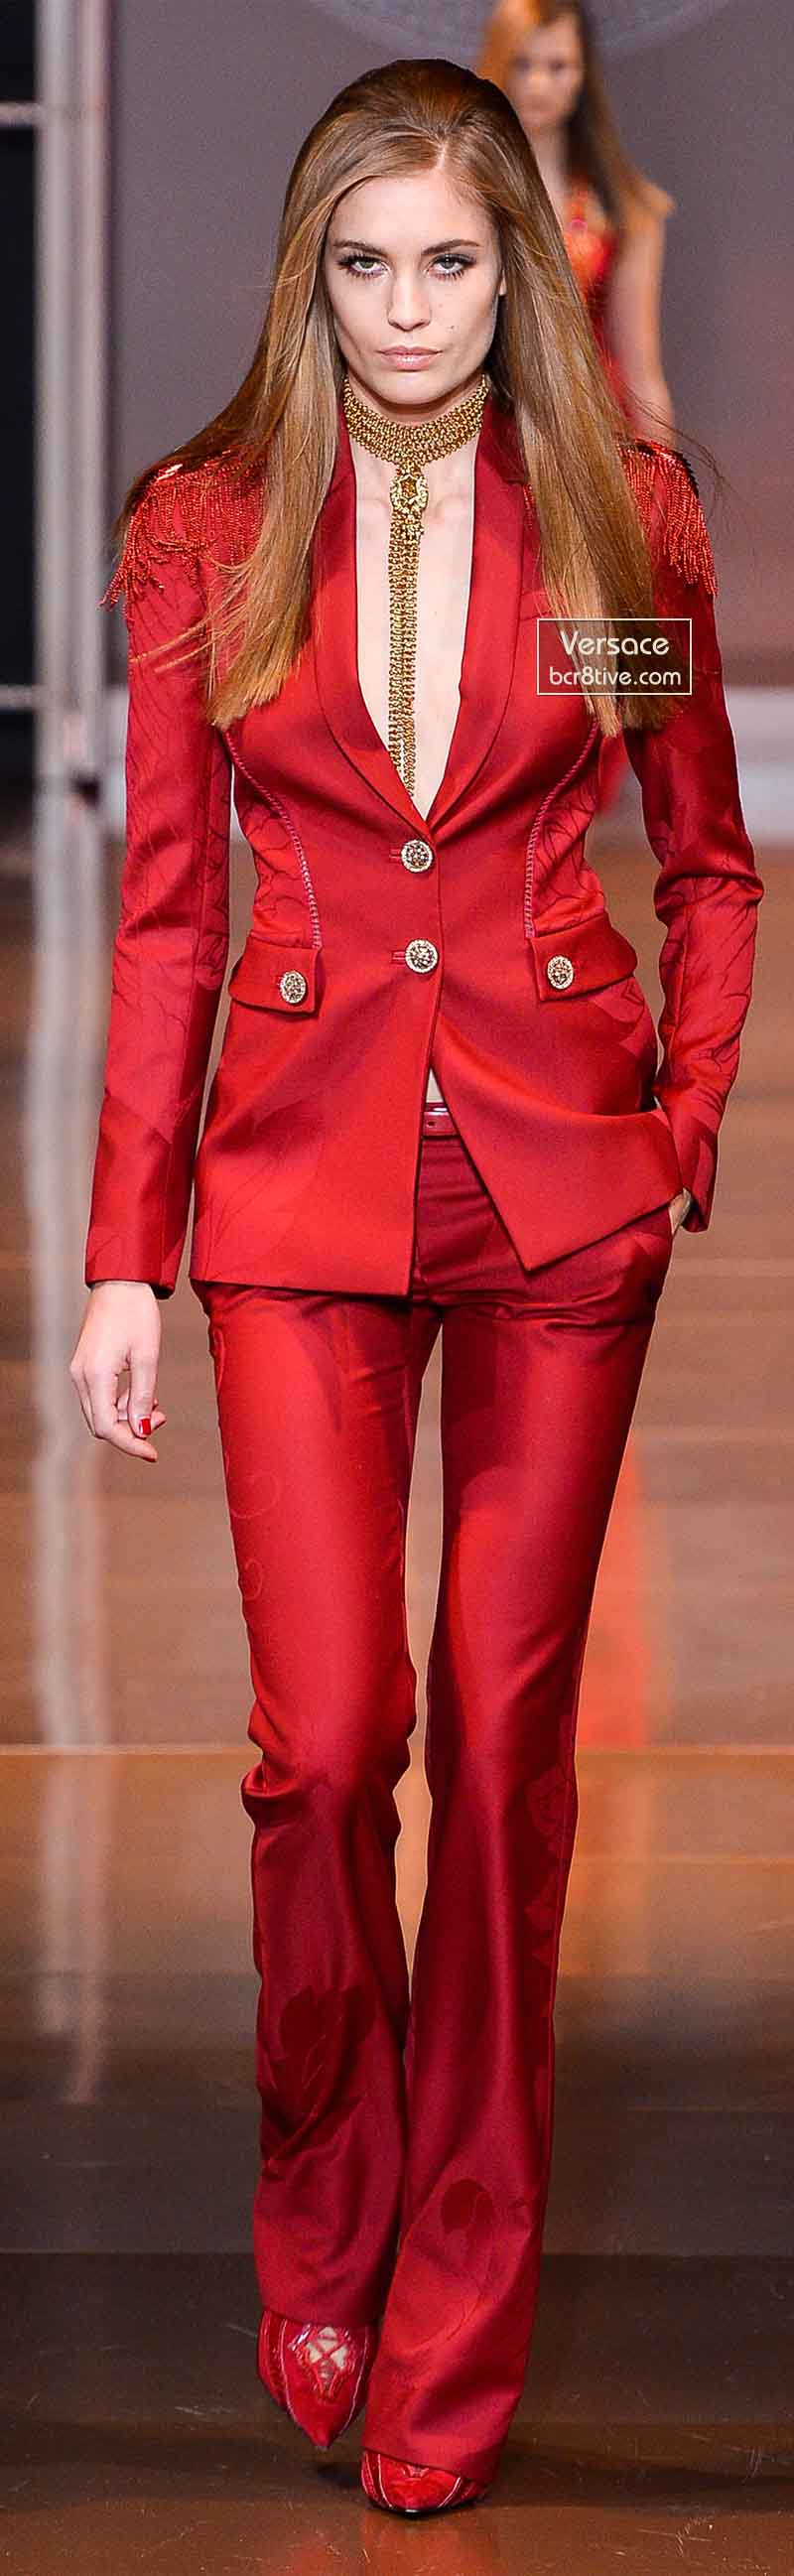 Versace Fall 2014 - Nadja Bender